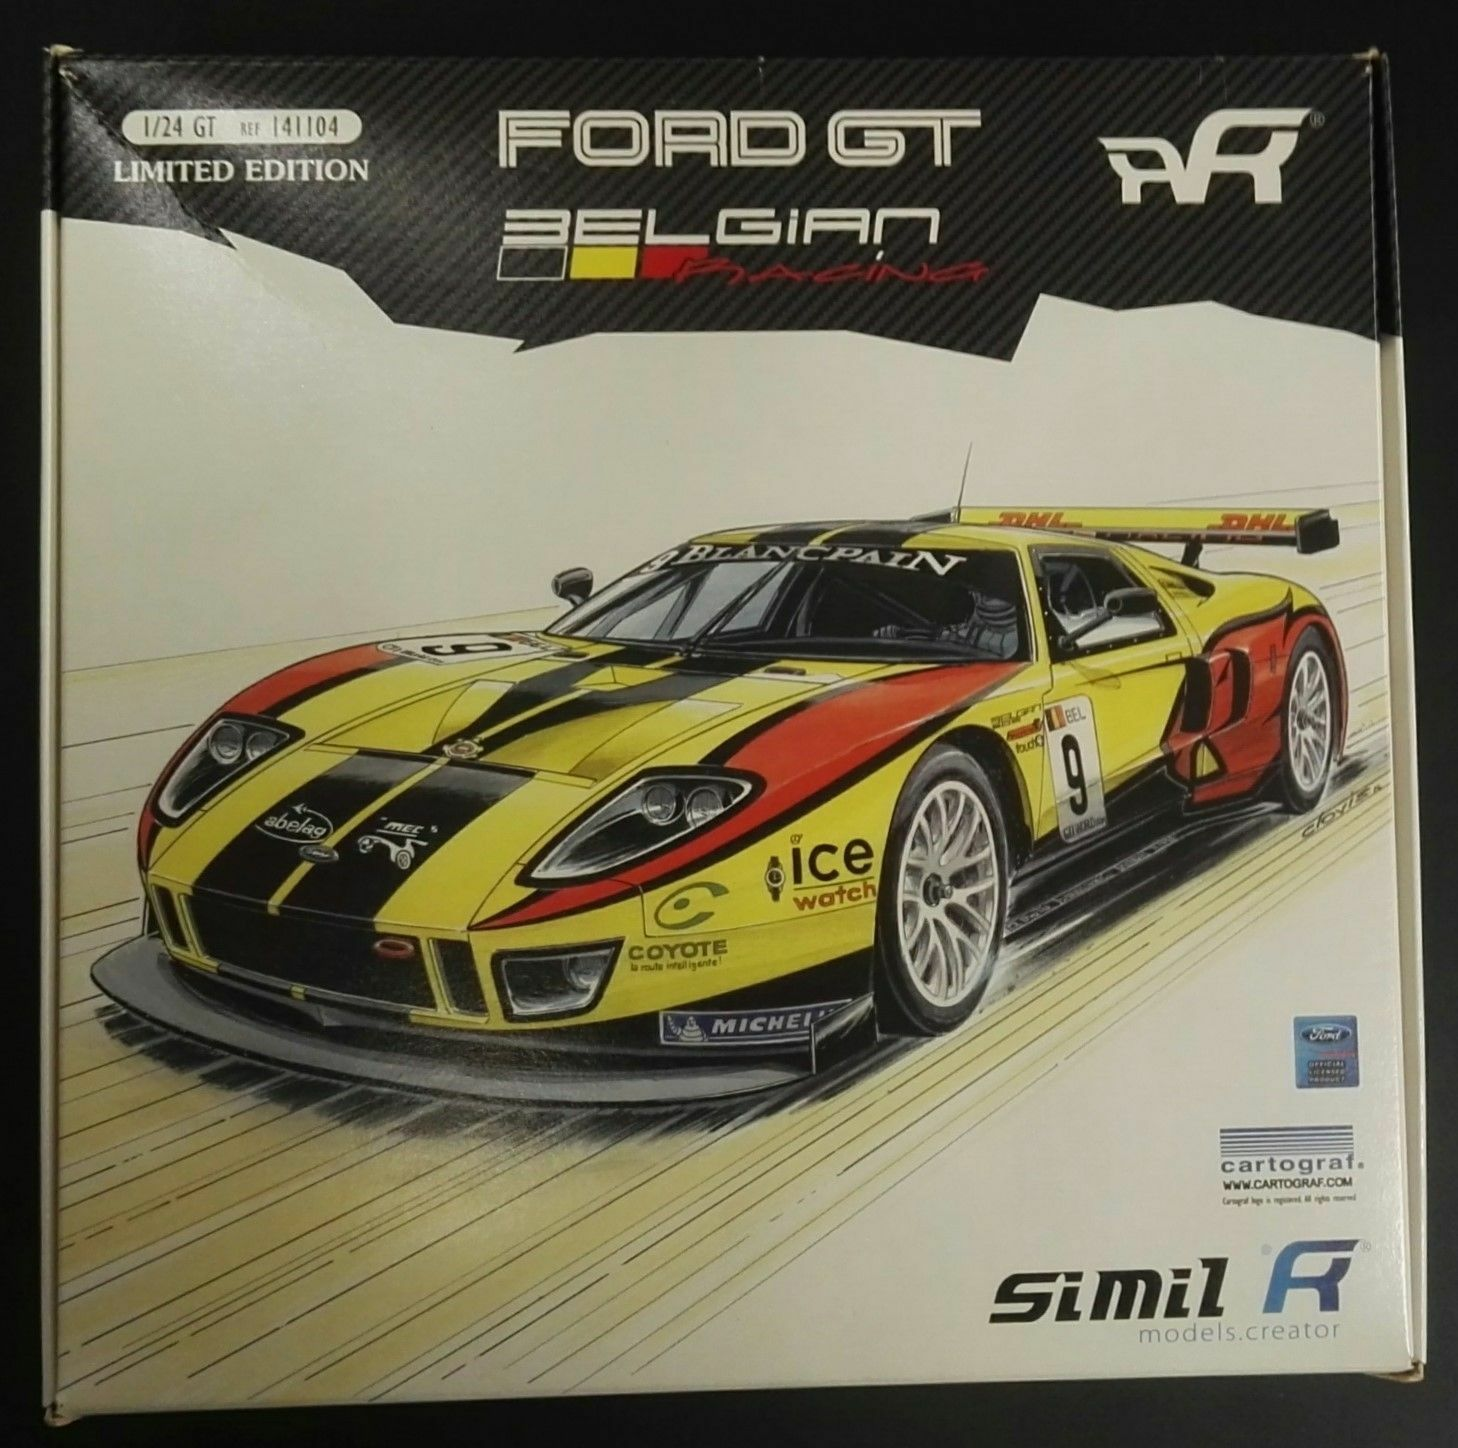 SIMIL R - FORD BELGIAN RACING - KIT MONTAGGIO 1/24 - ART. 141104